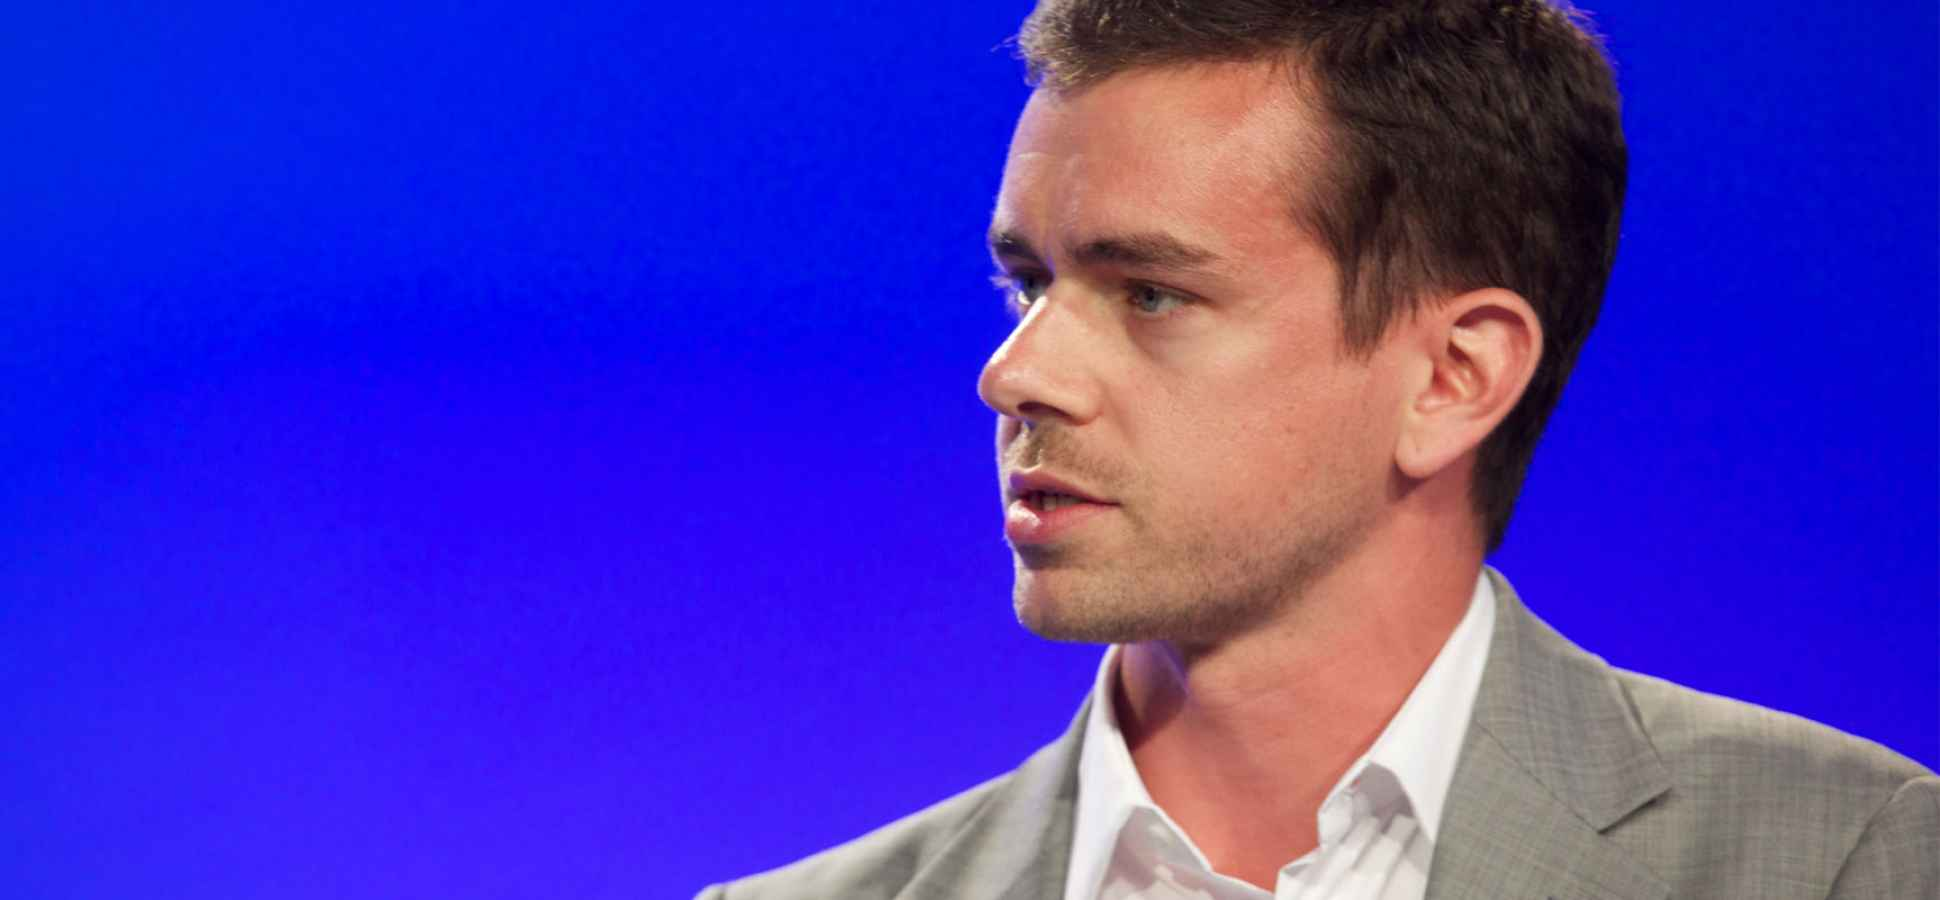 How Text Messages, Maps, and Obama Inspired Jack Dorsey